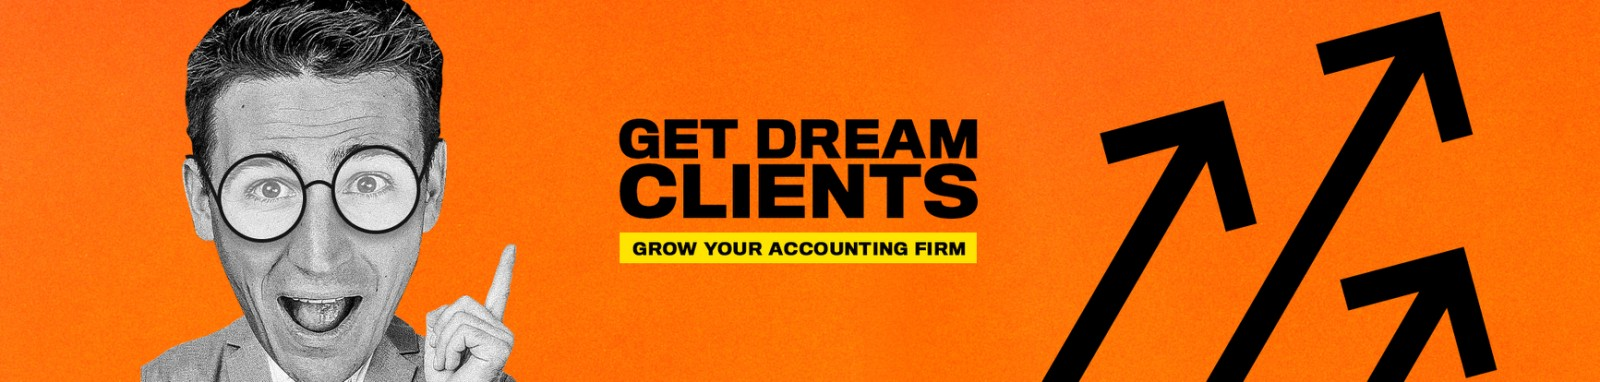 Strategies to Grow Your Accounting Firm Fast